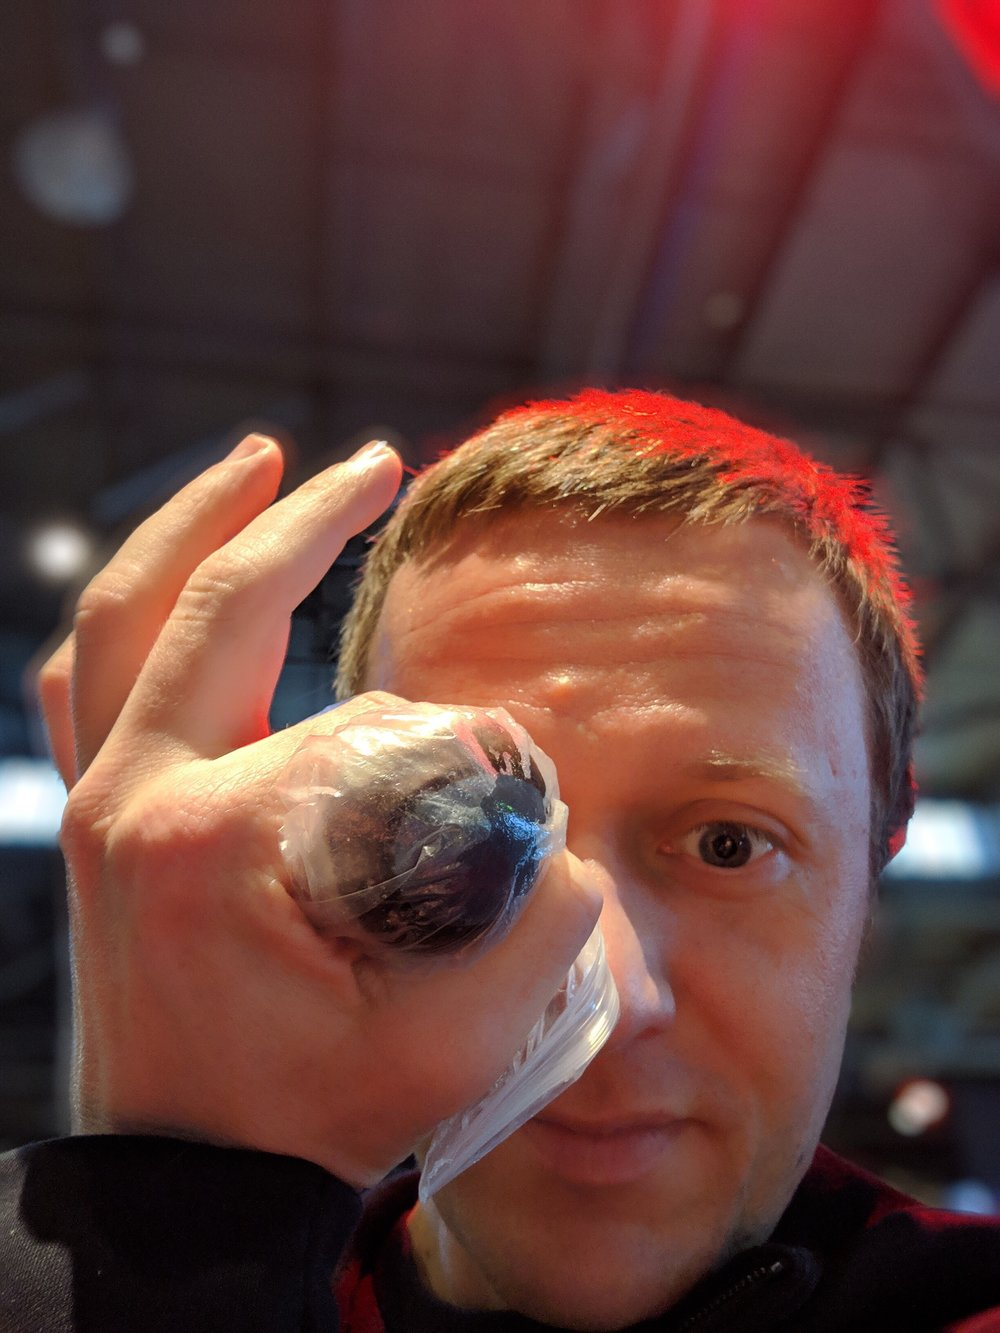 That's a cow's eyeball!